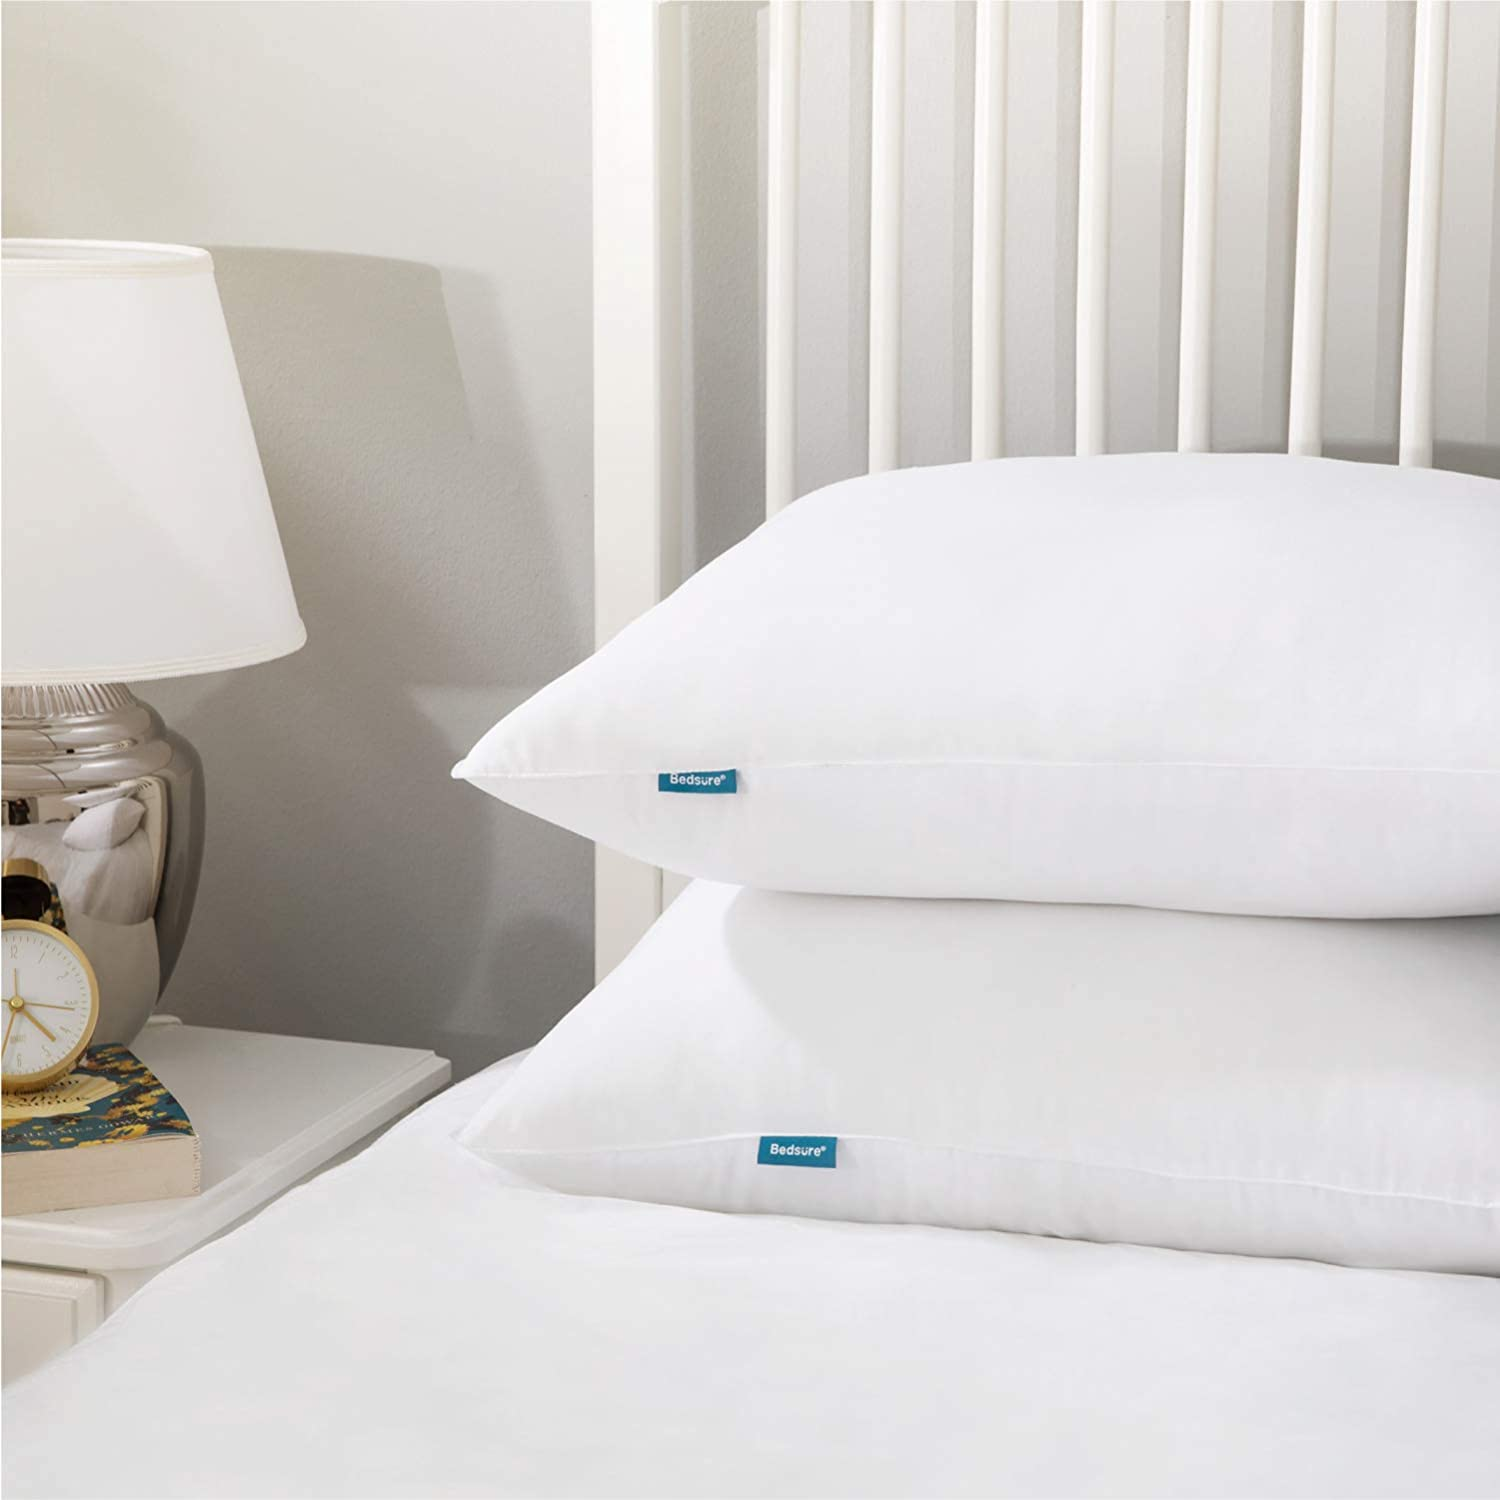 Bedsure Bed Pillows for Sleeping 2 Pack - Soft Down Alternative Hotel Quality Pillow Set Standard Size 20X26 inches - Hypoallergenic Sleep Pillows for Side and Back Sleeper: Home & Kitchen